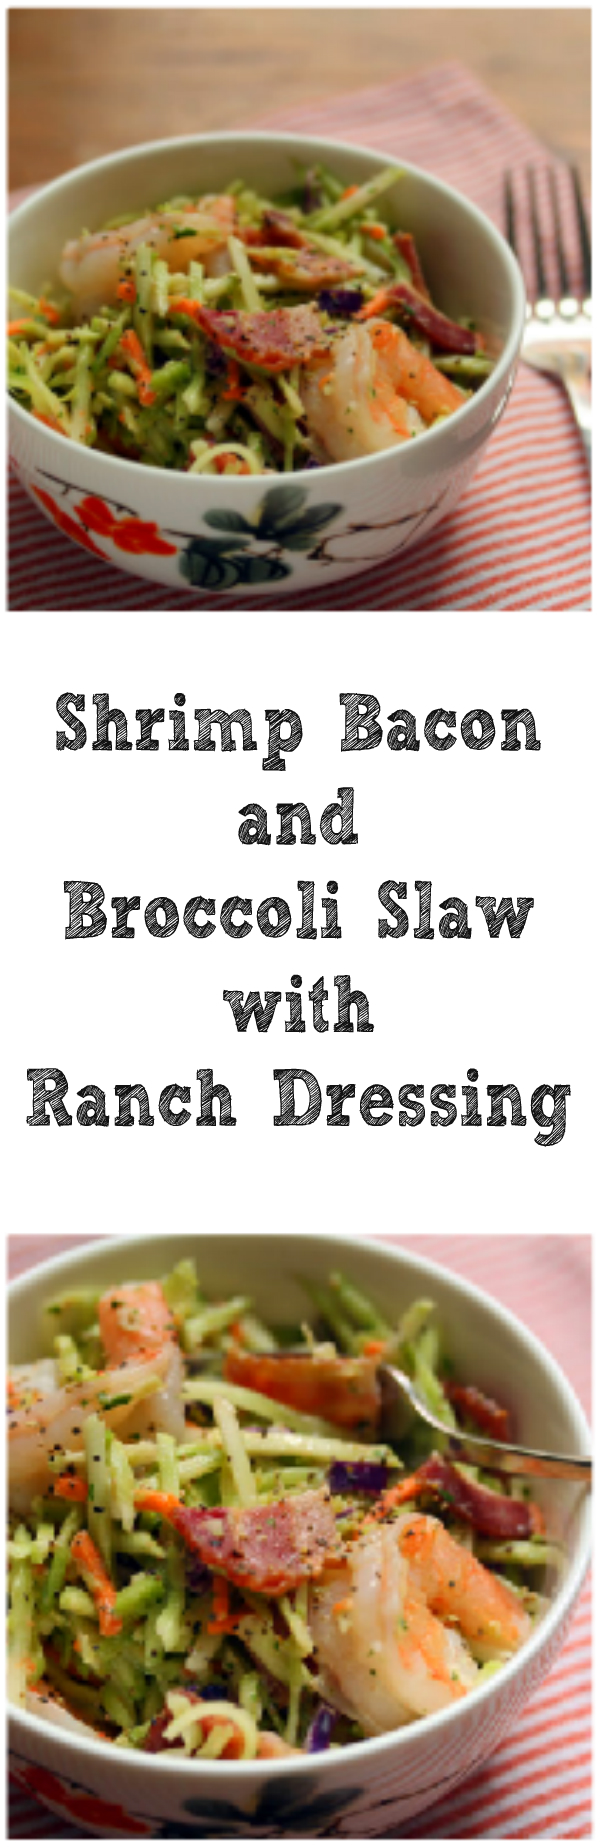 Shrimp, bacon and broccoli slaw, with homemade ranch dressing, from The Perfect Pantry.